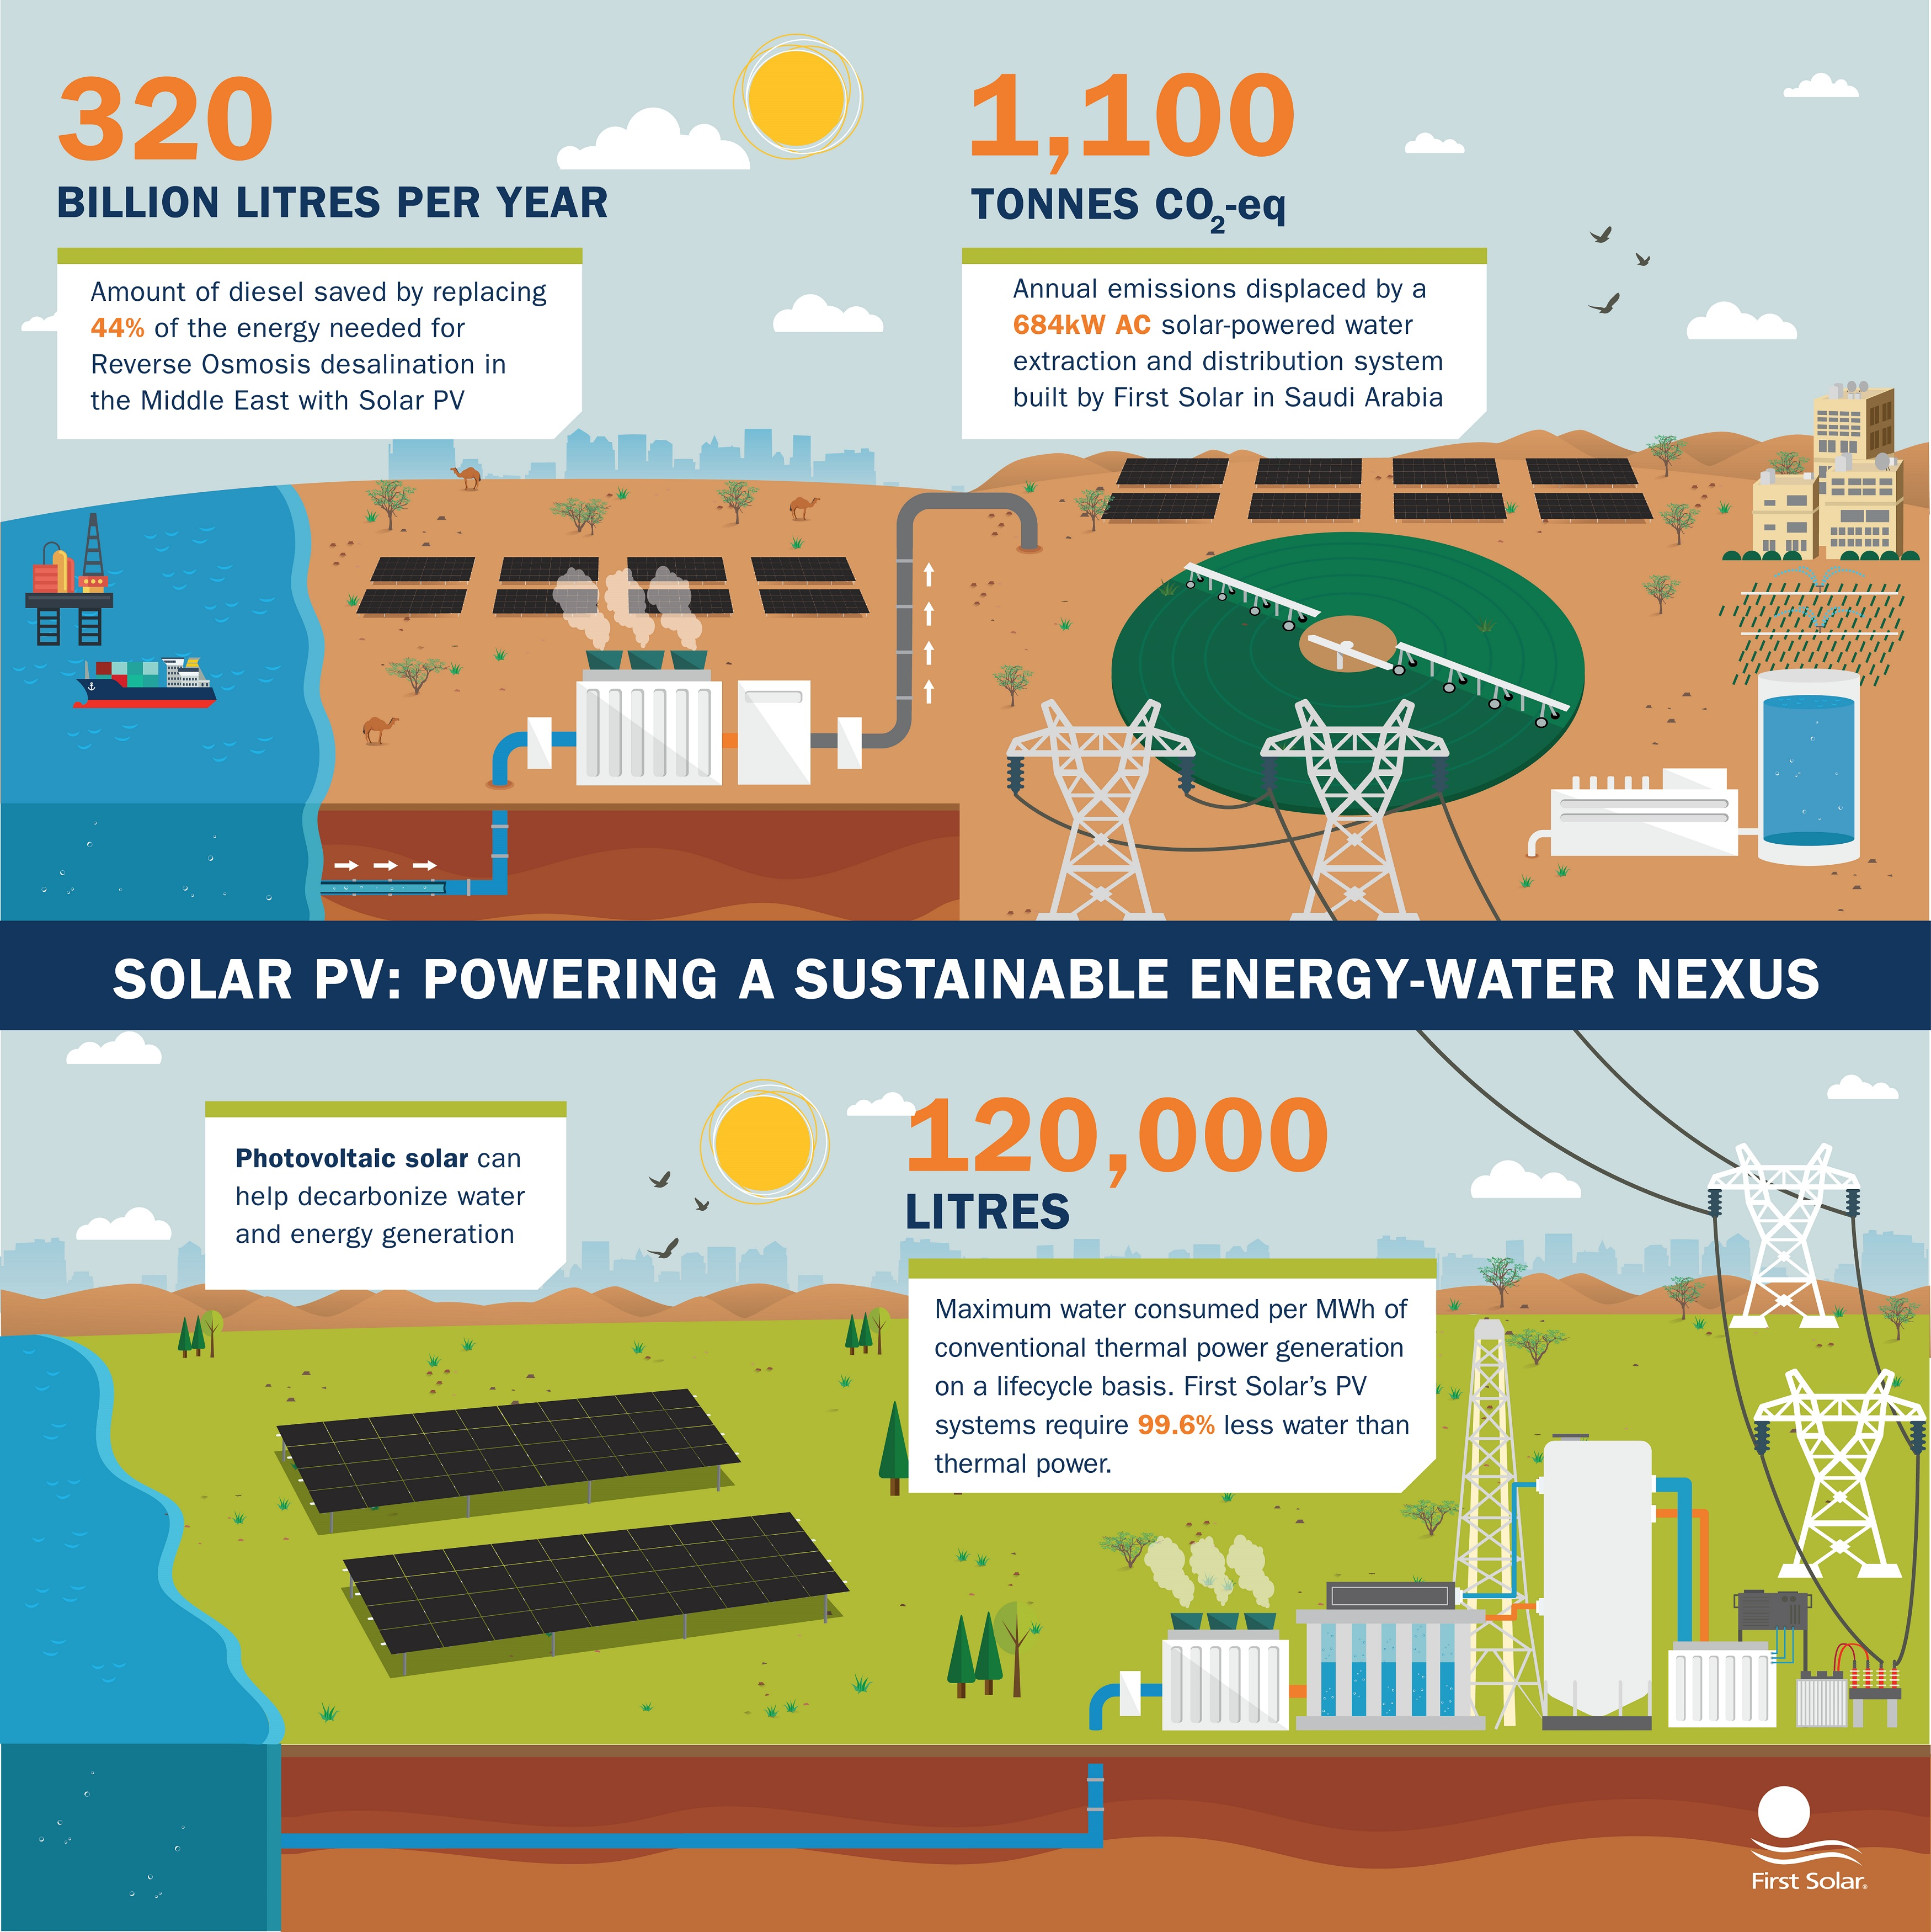 Solar PV: Powering a Sustainable Energy-Water Nexus|